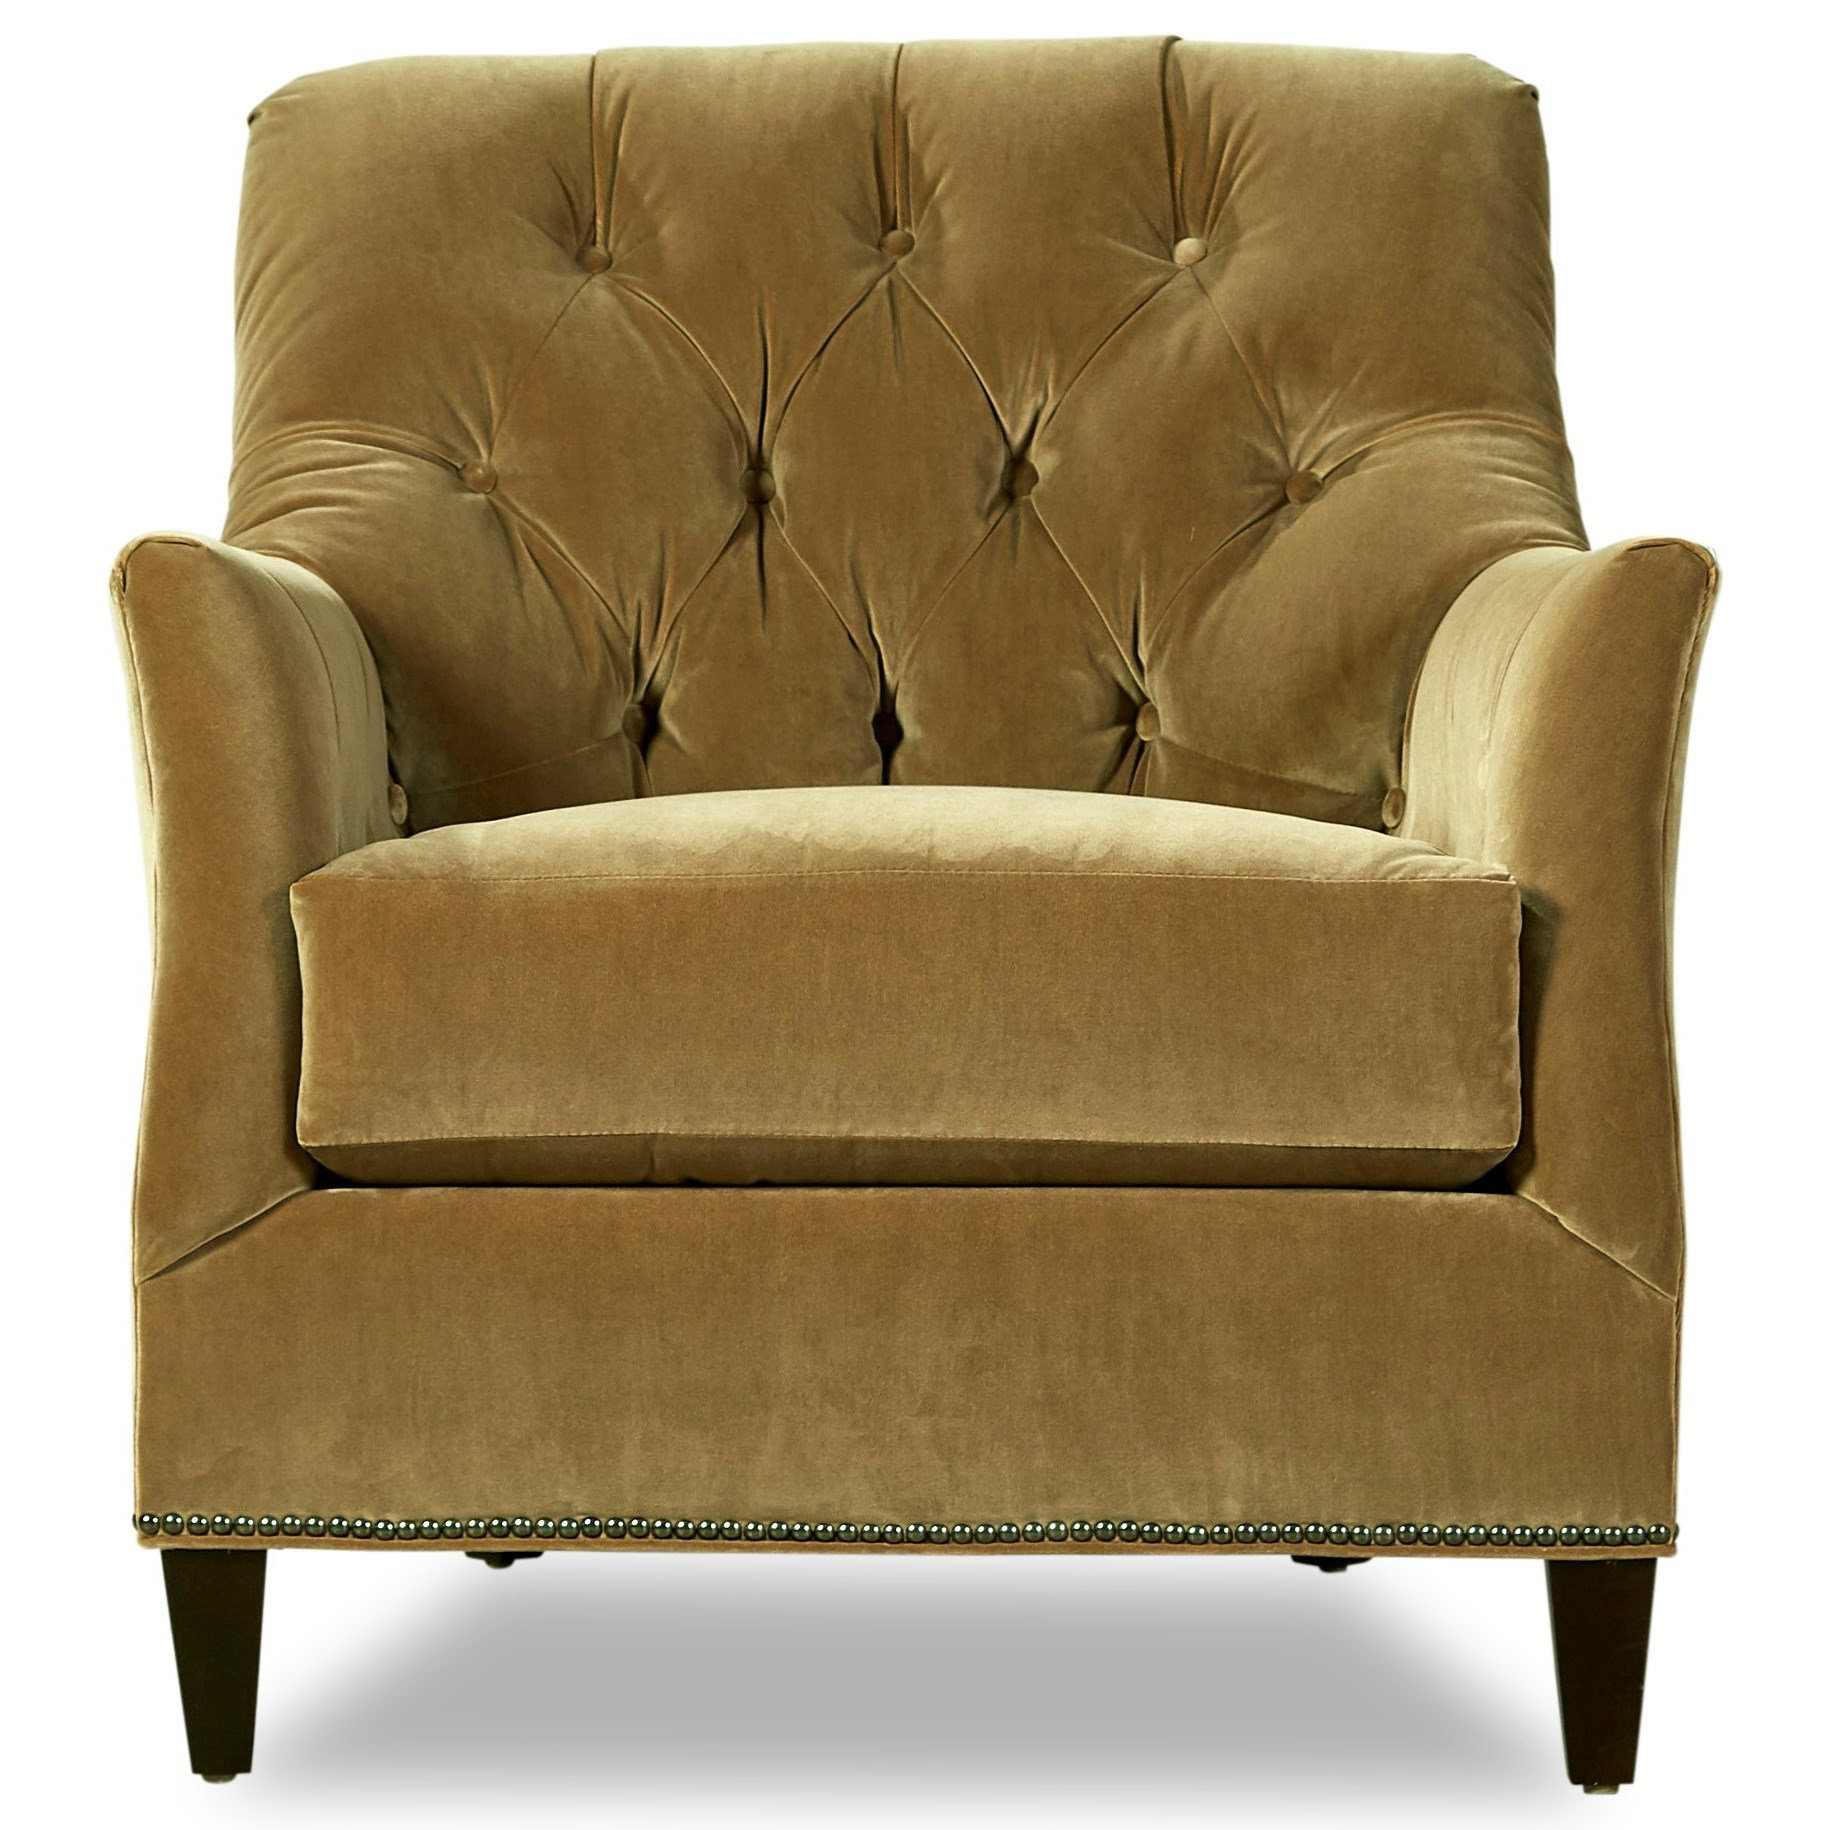 7765 Upholstered Chair by Huntington House at Belfort Furniture